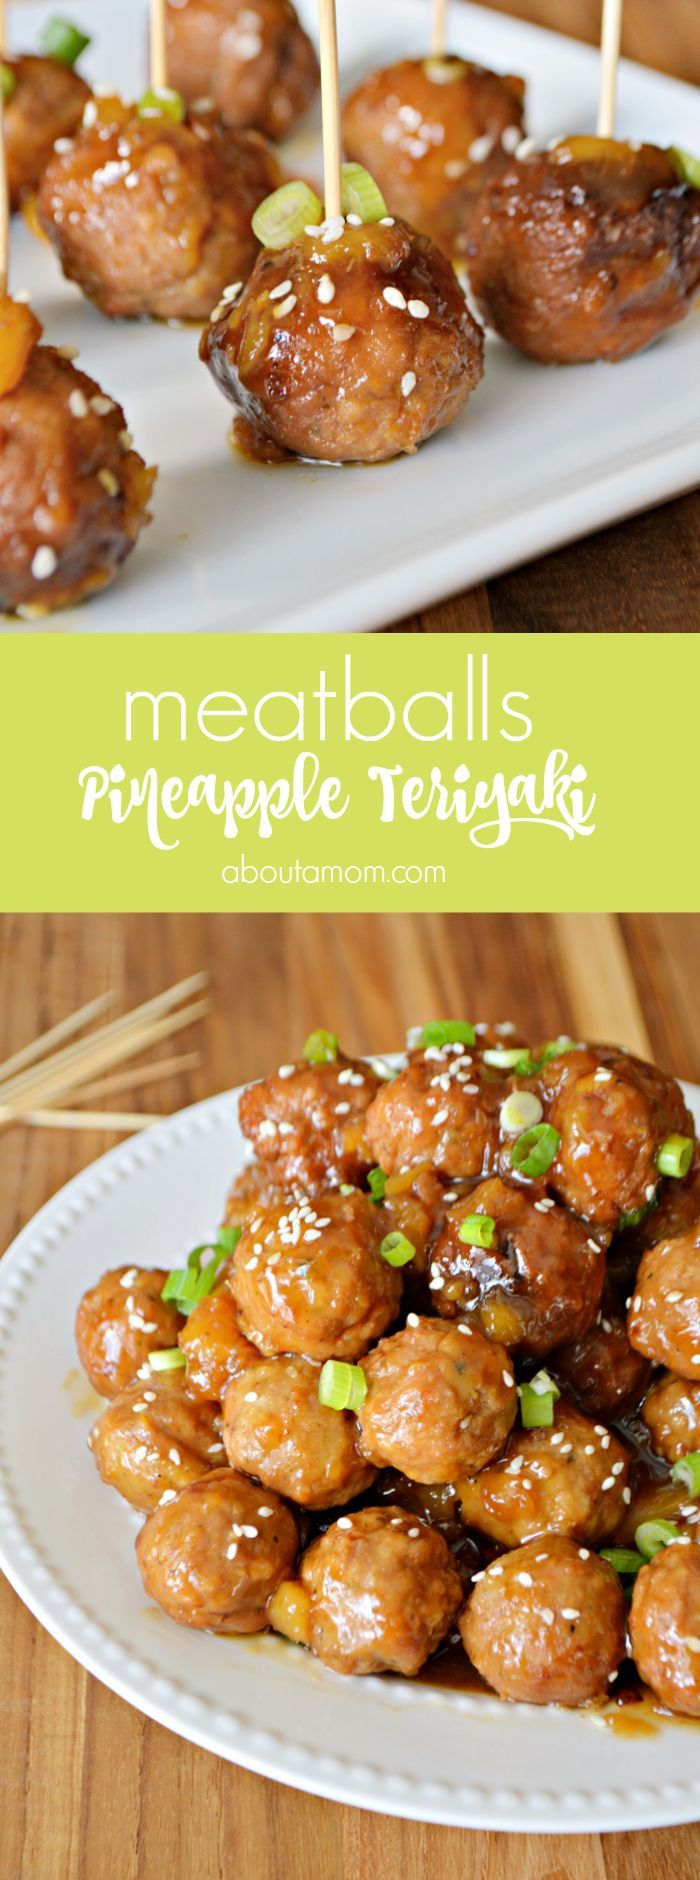 813 Best Appetizers Recipes Images On Pinterest